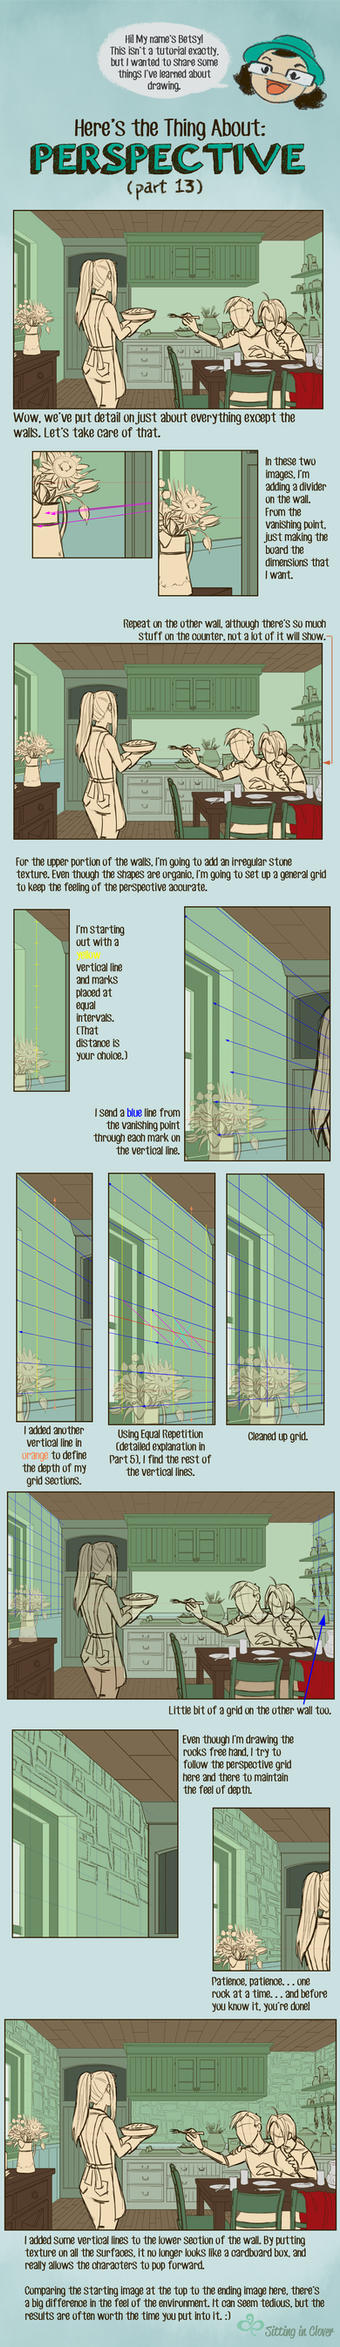 13 Here's the Thing About Perspective by betsyillustration